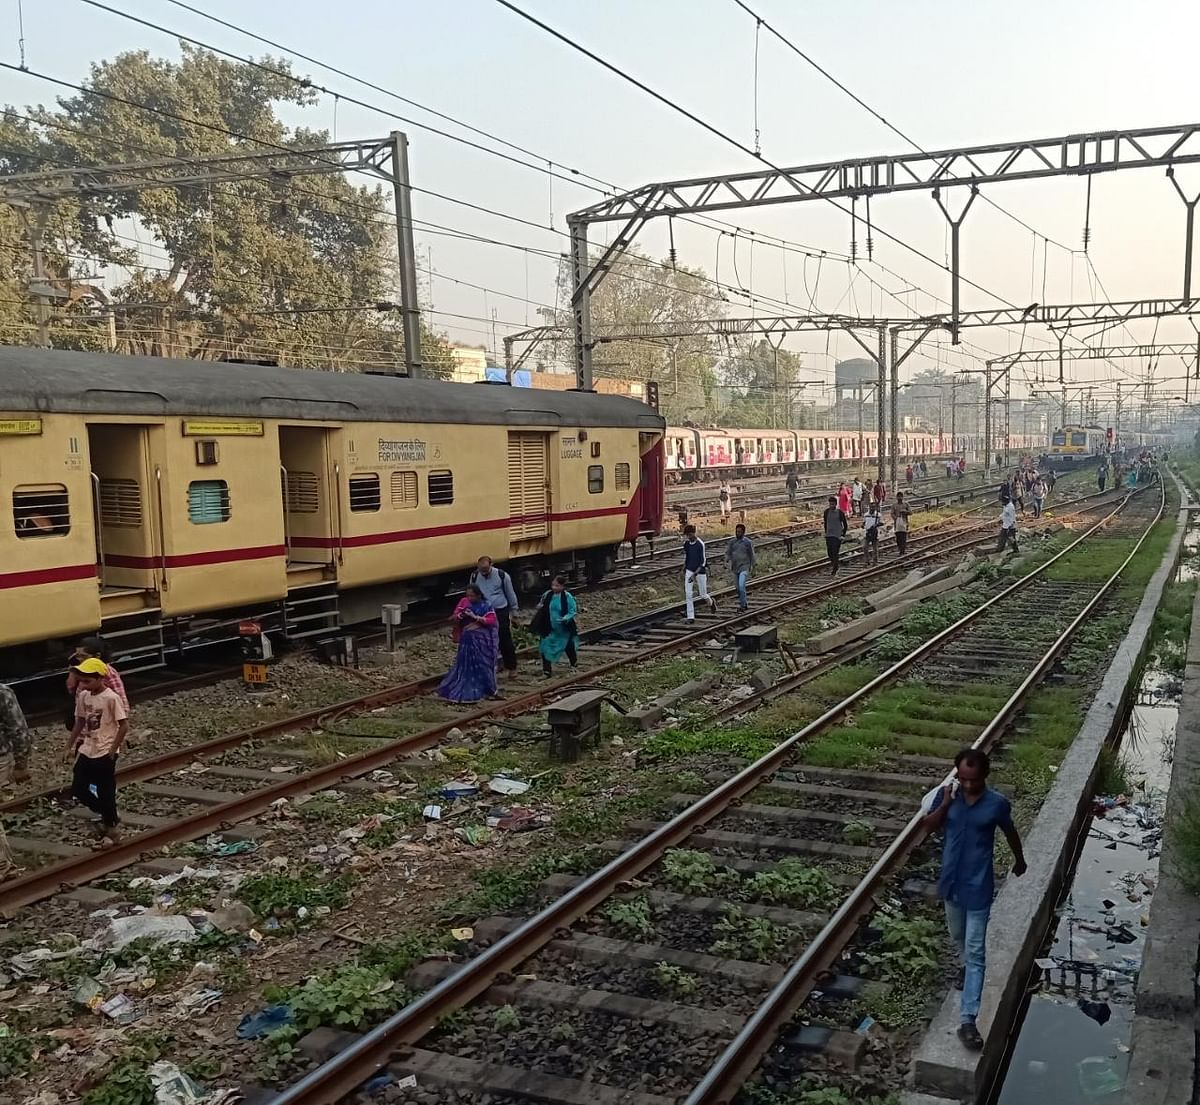 Mumbai Local: Suburban services on Central Railway disrupted after Latur express engine failed at Dadar station